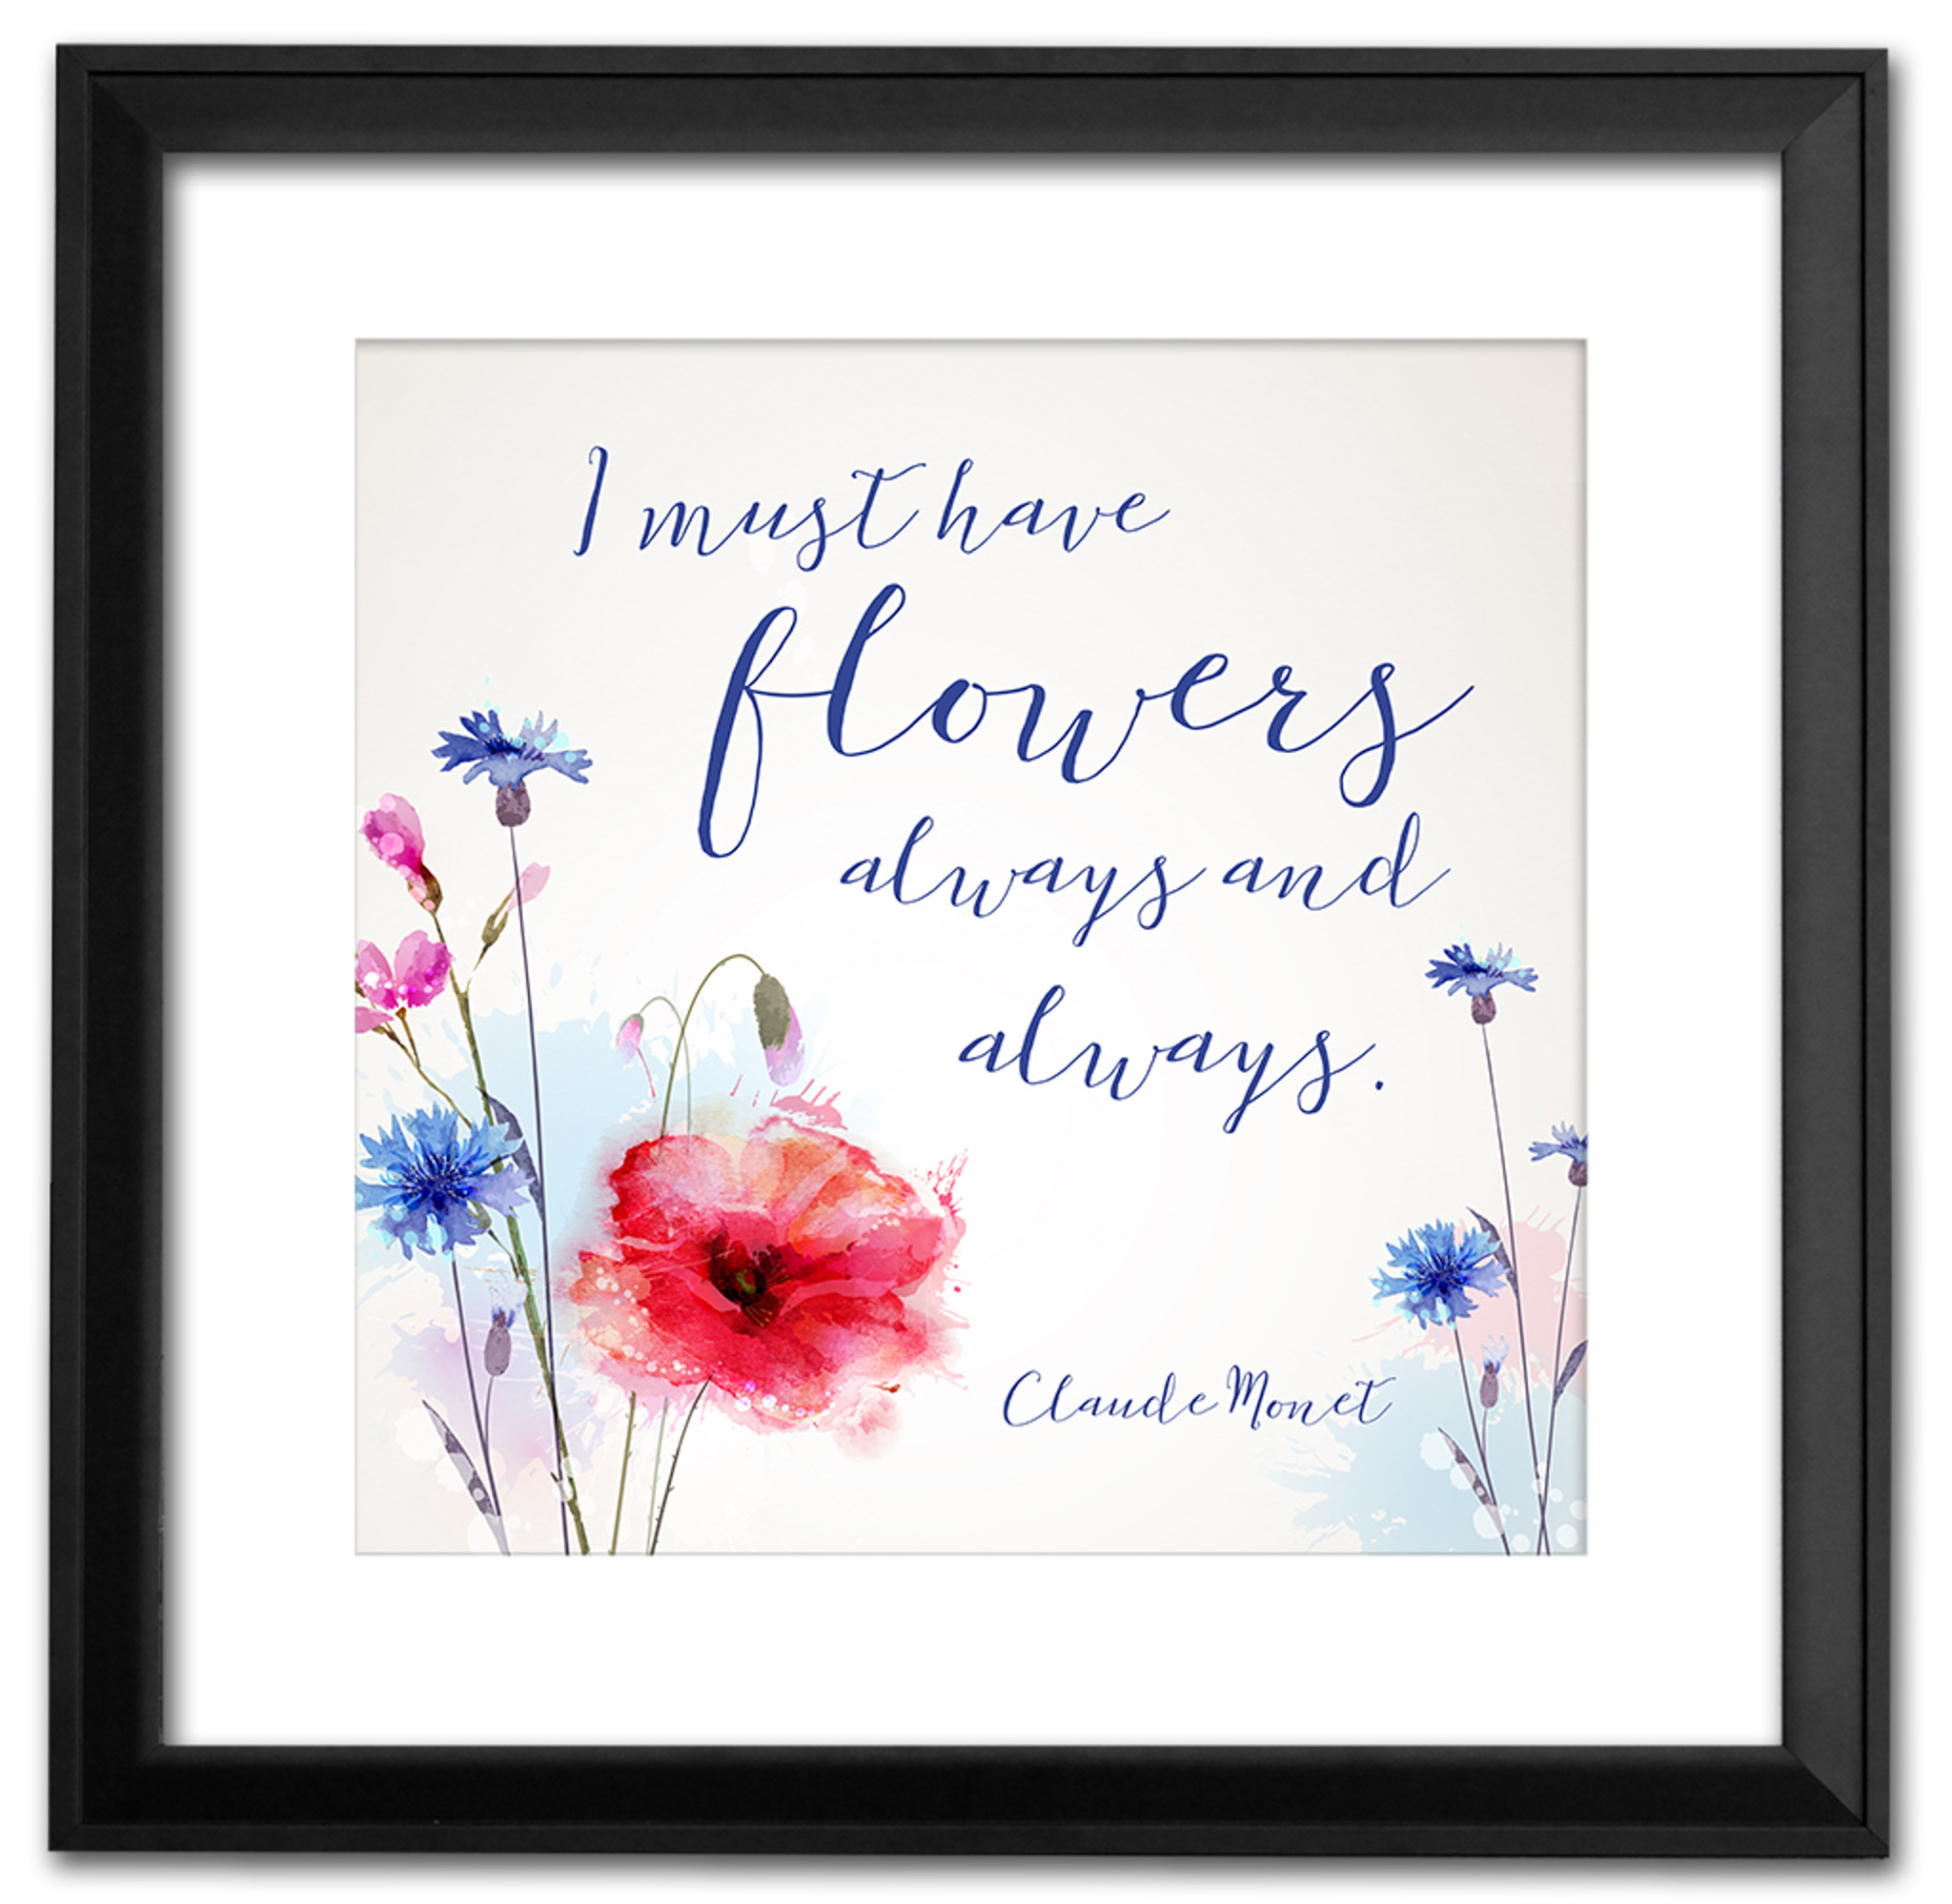 Round Wood Sign with Beaded Frame Flower Spring Decorations I must have flowers always and always Claude Monet Quote Country Decor